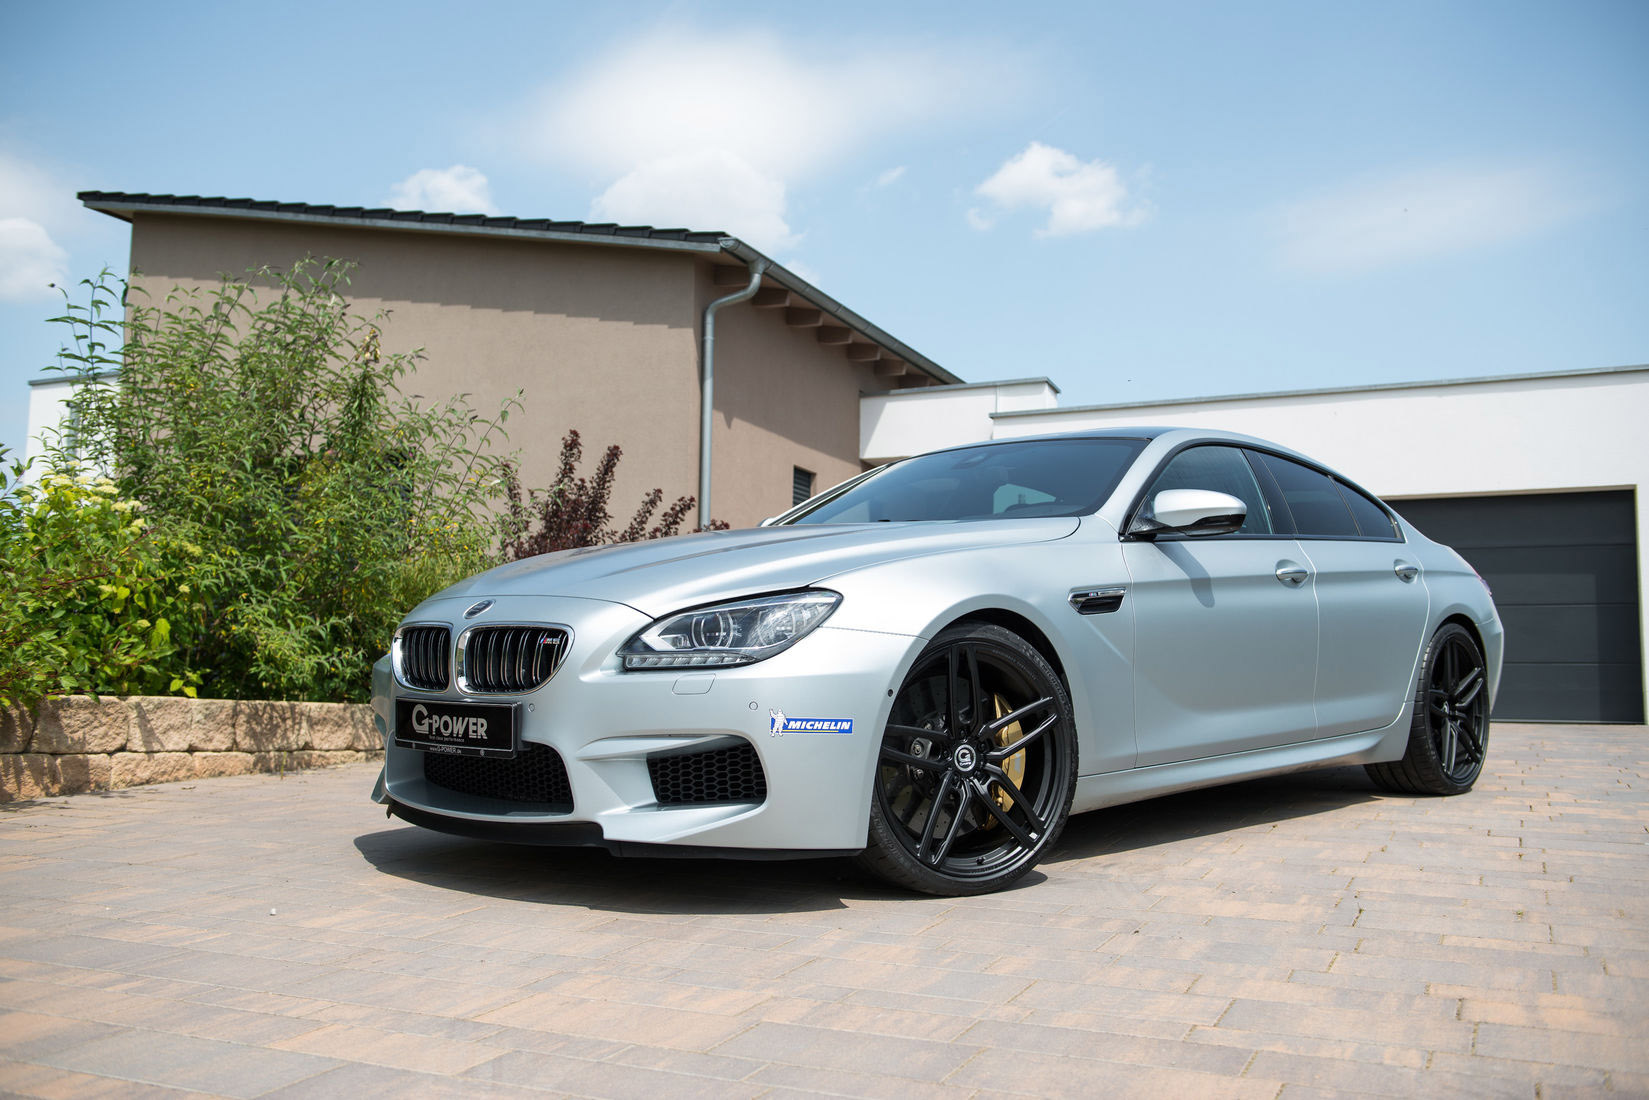 g power introduces the mighty bmw m6 f06 gran coupe. Black Bedroom Furniture Sets. Home Design Ideas